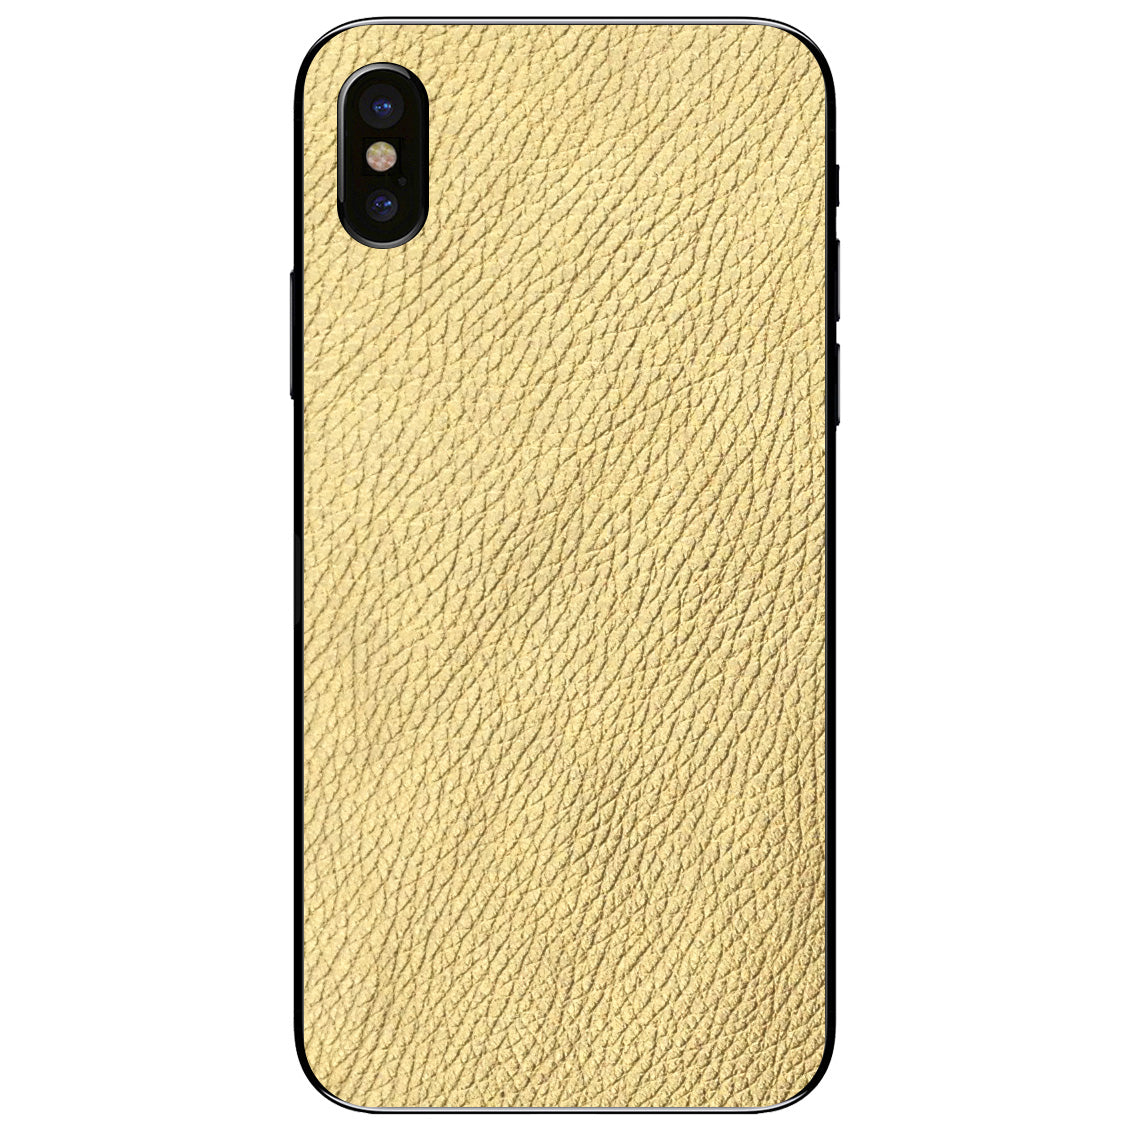 Gold iPhone X Leather Skin